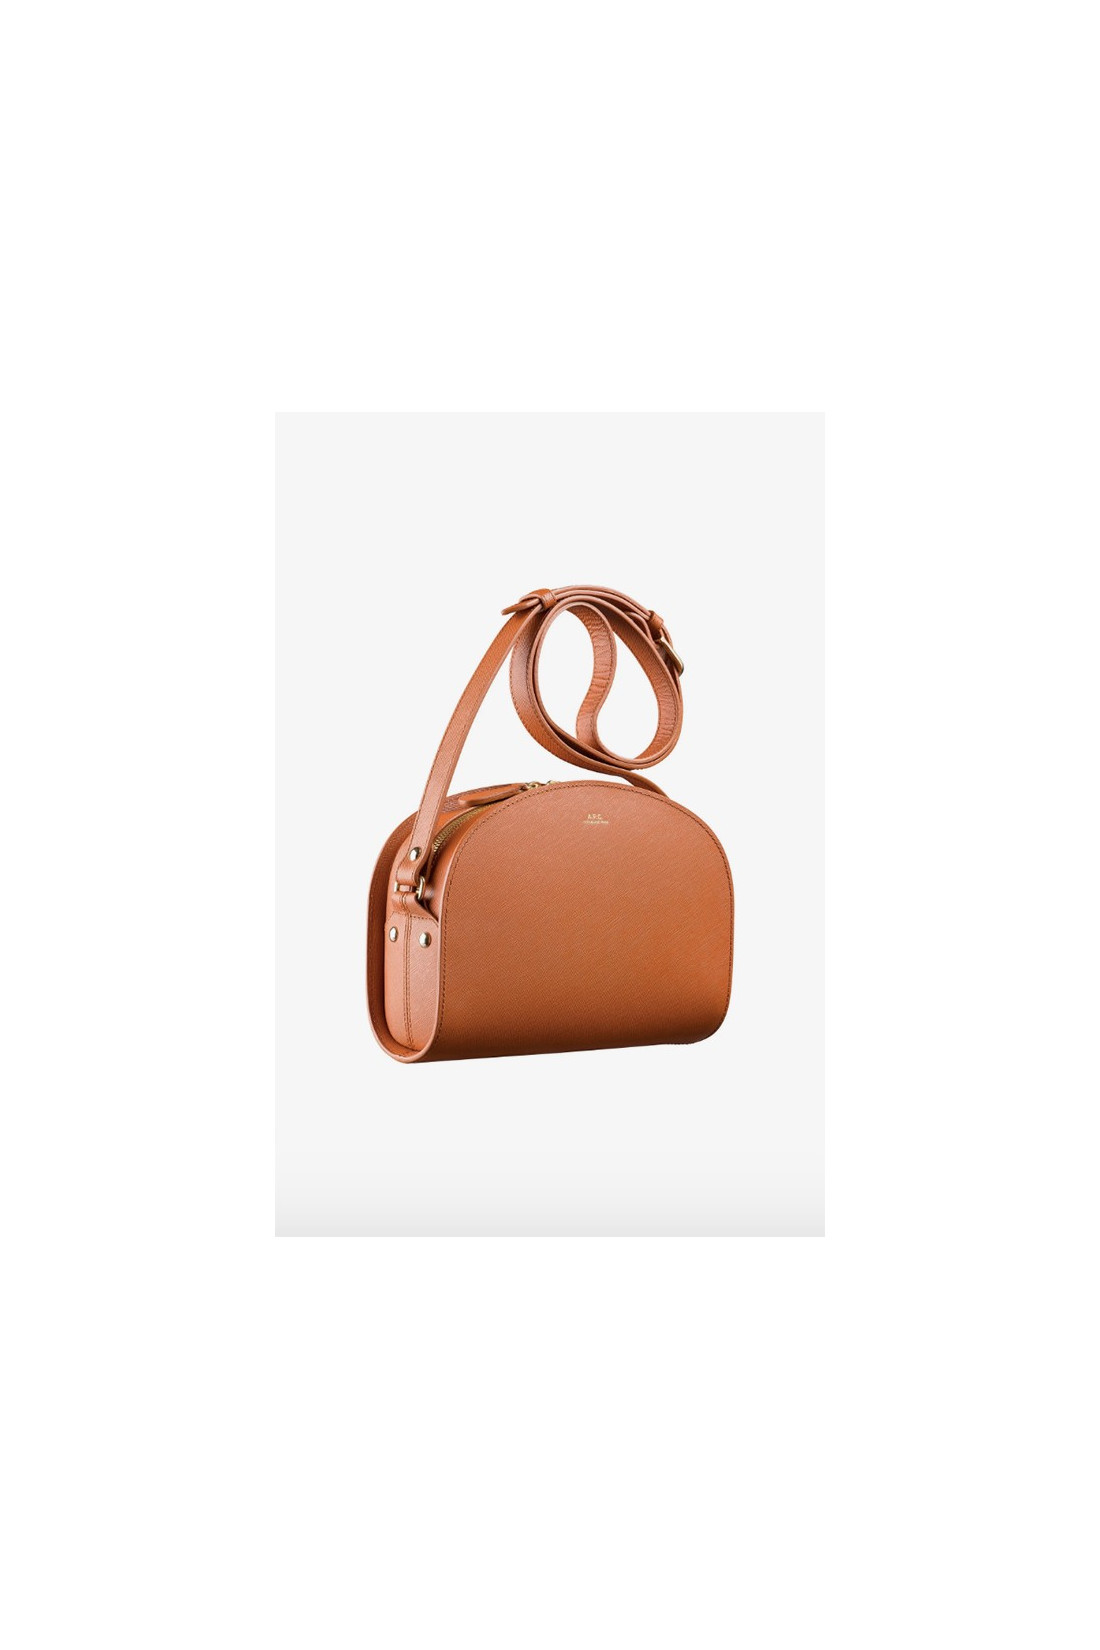 A.P.C. FOR WOMAN / Sac demi-lune Ginger